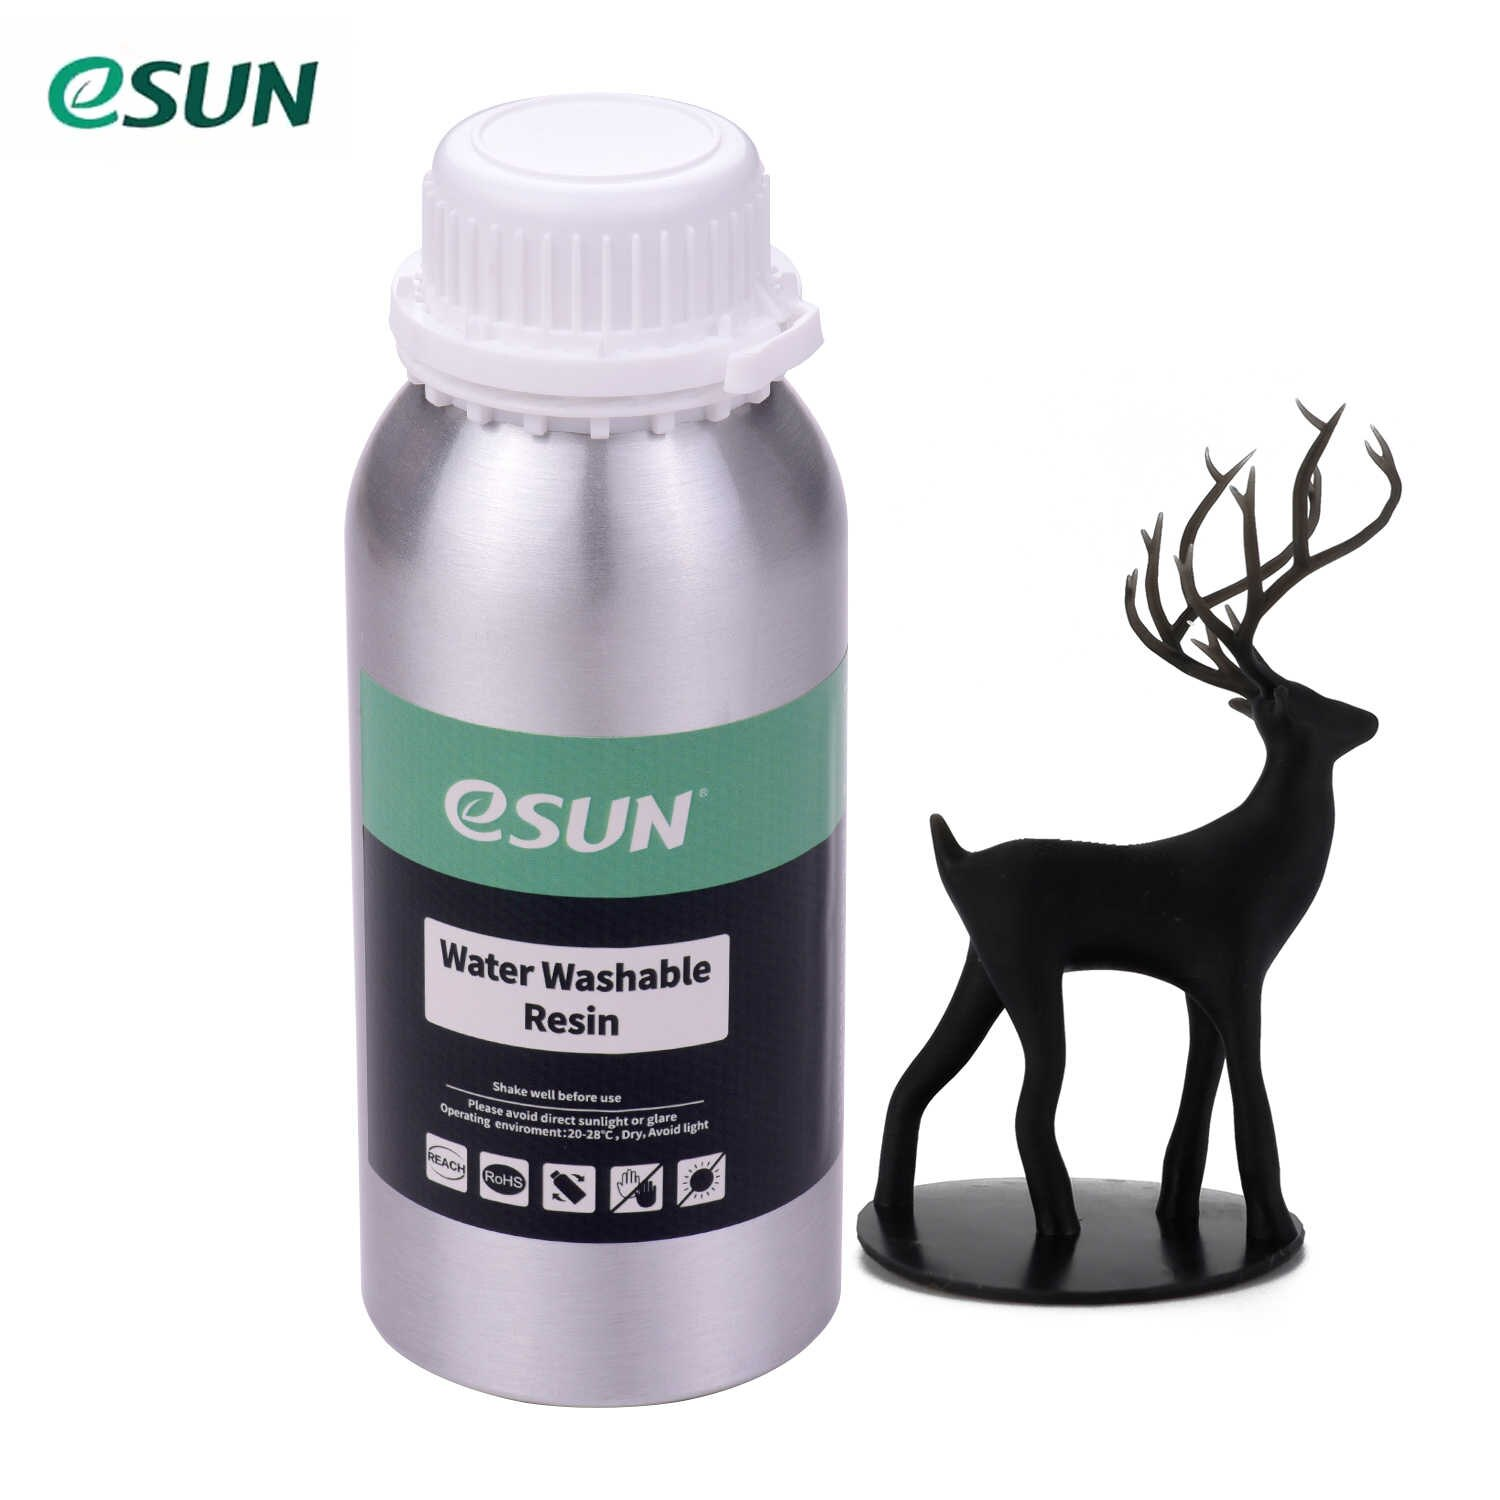 Esun Water washable resin (0.5KG)